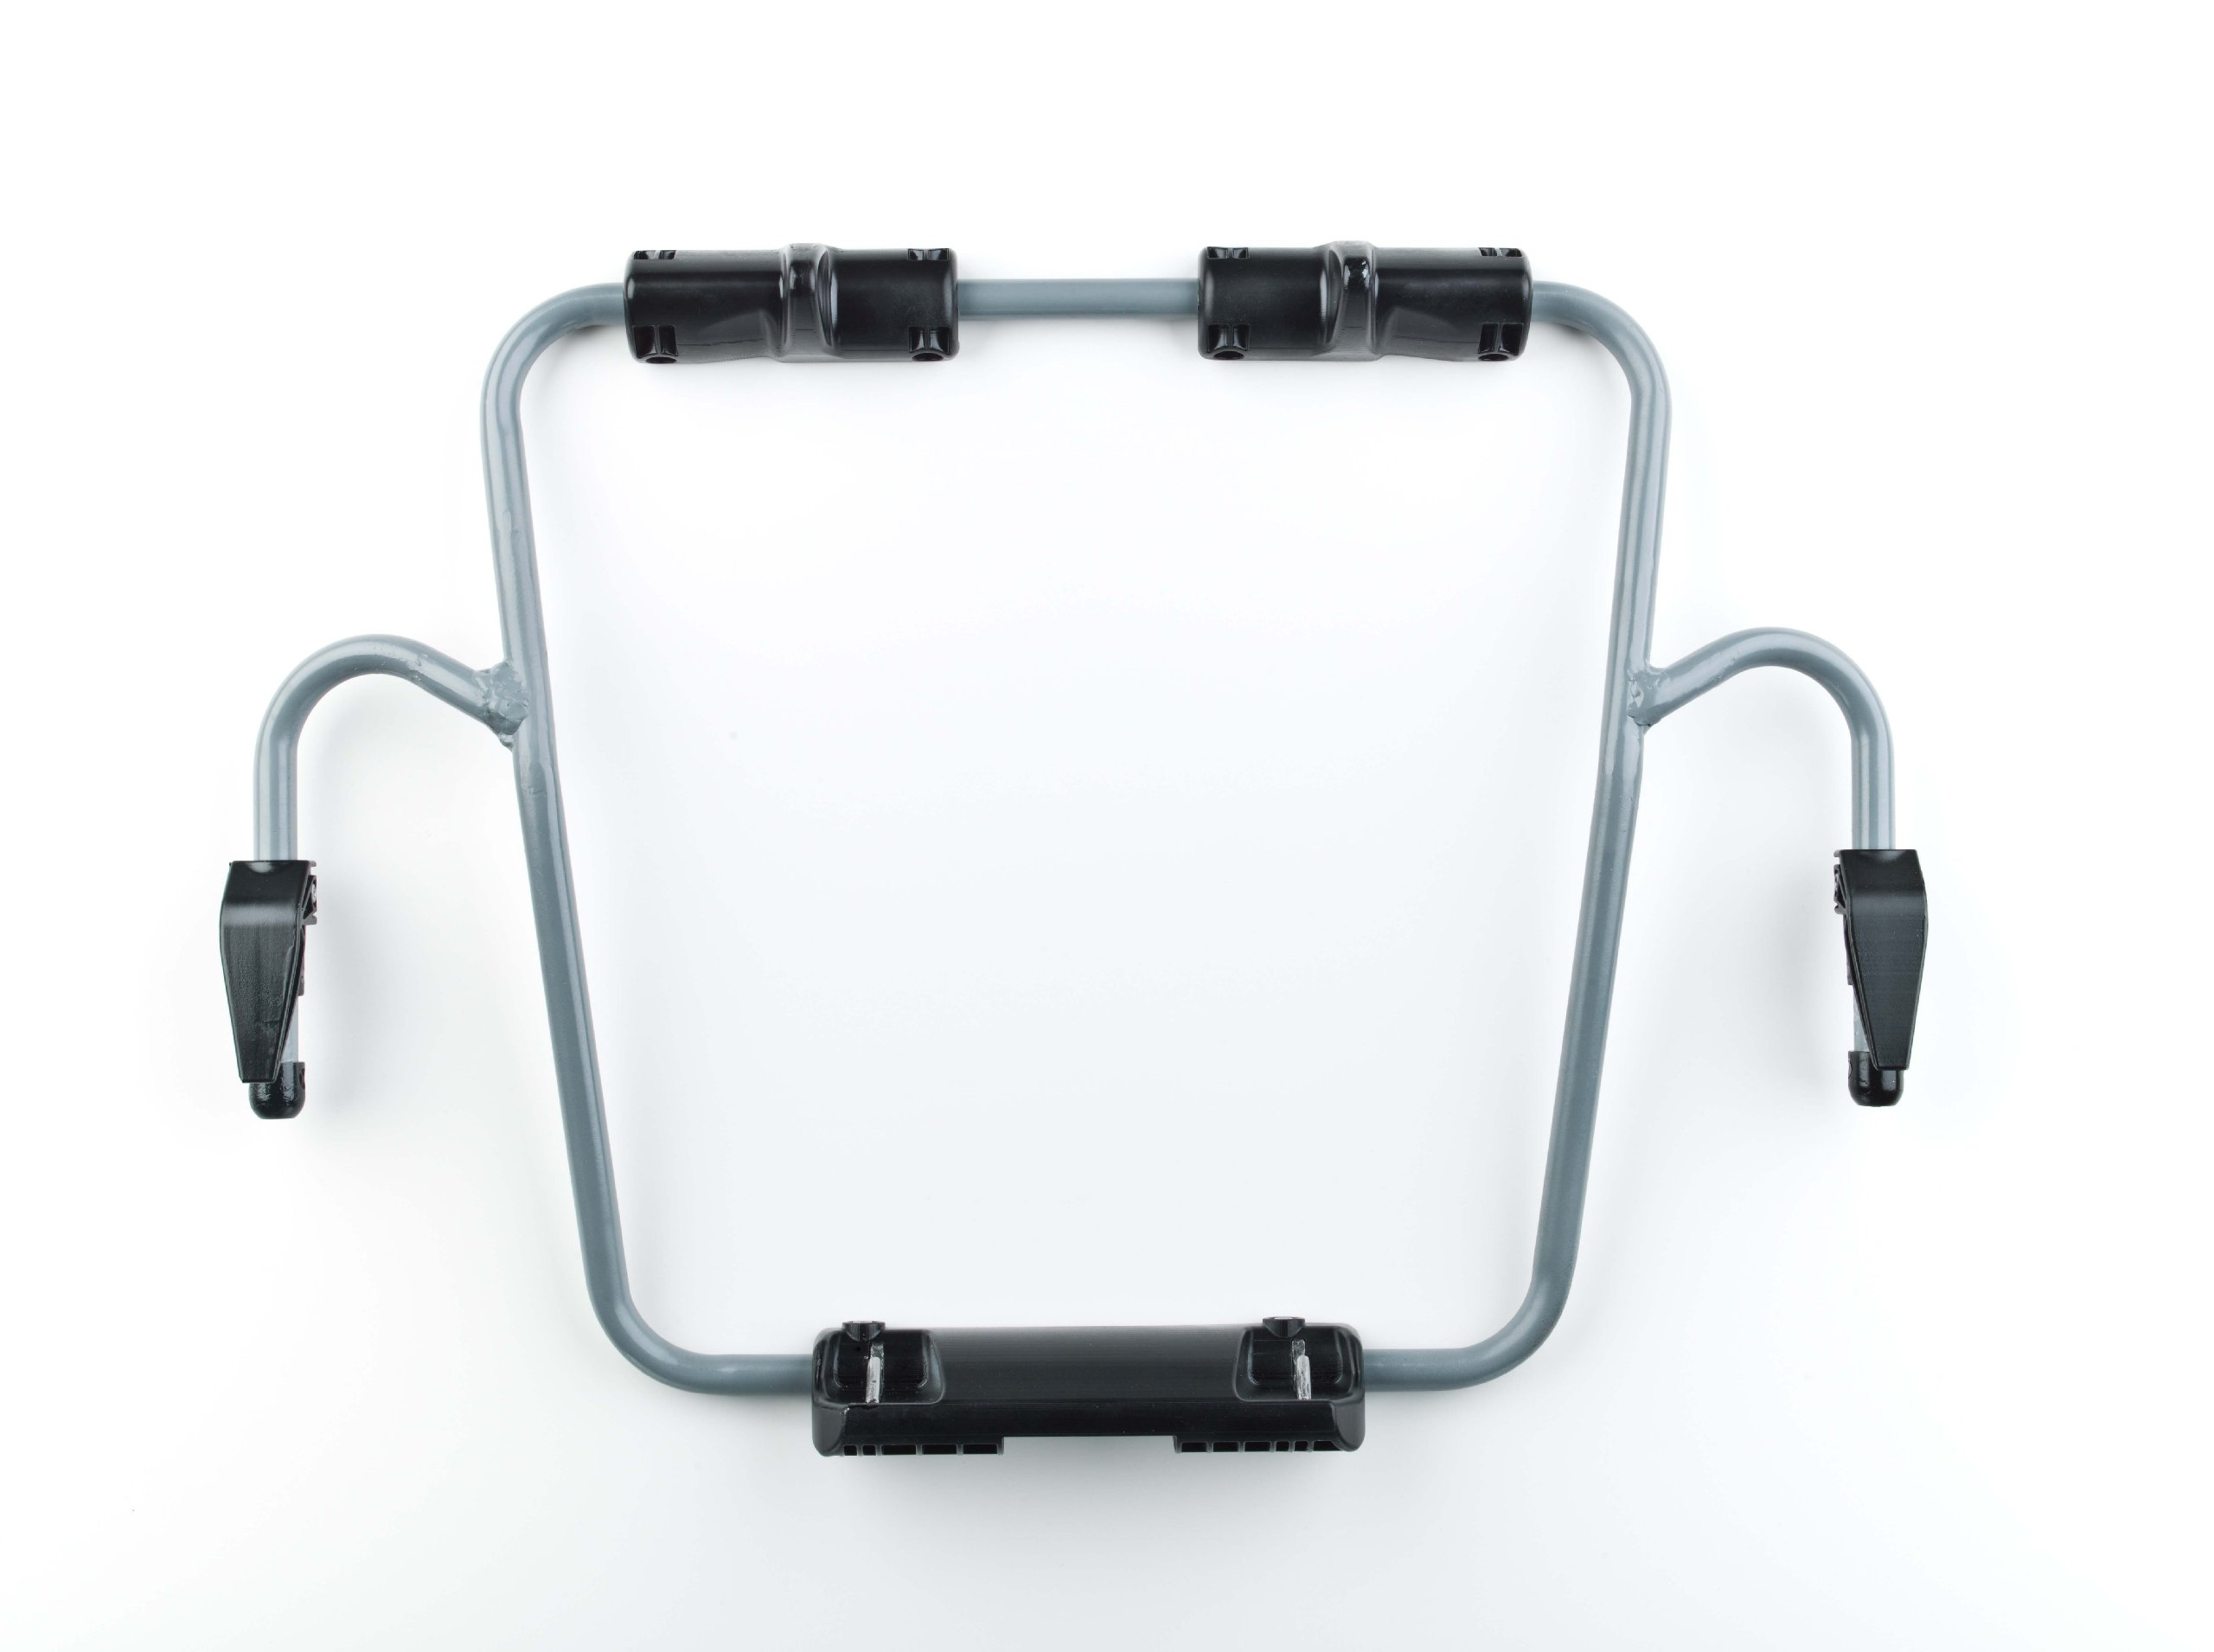 Bob Pre 2016 Single Infant Car Seat Adapter For Graco Classic Connect